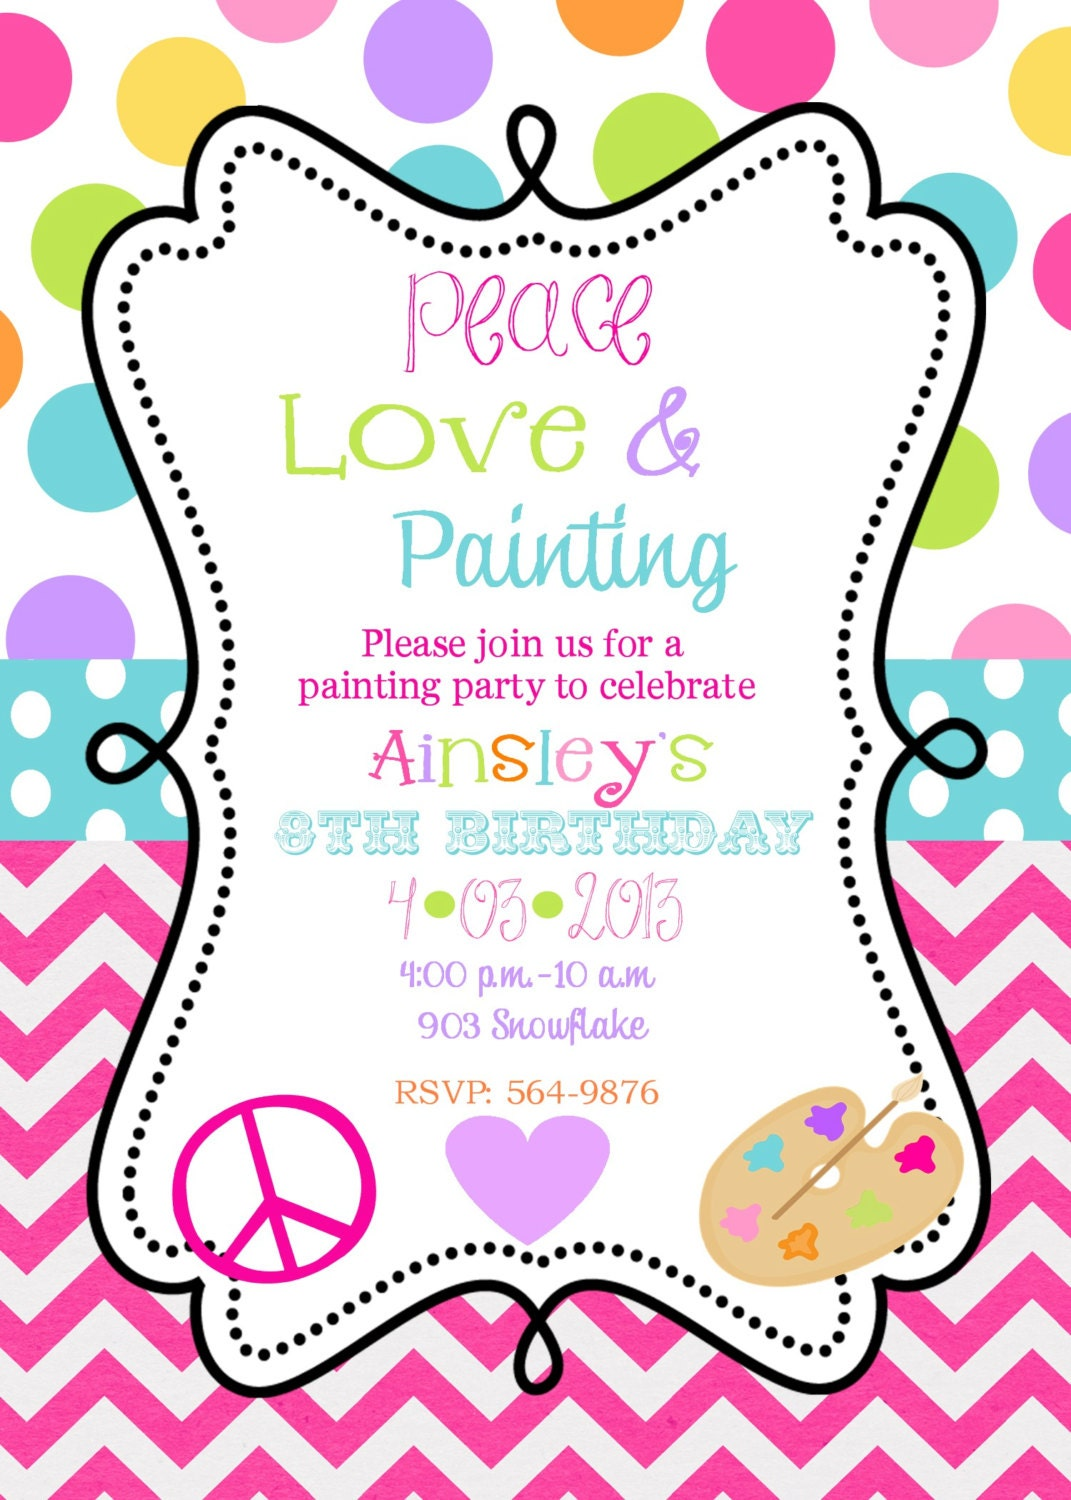 Peace Love Painting Birthday Party Invitations Art